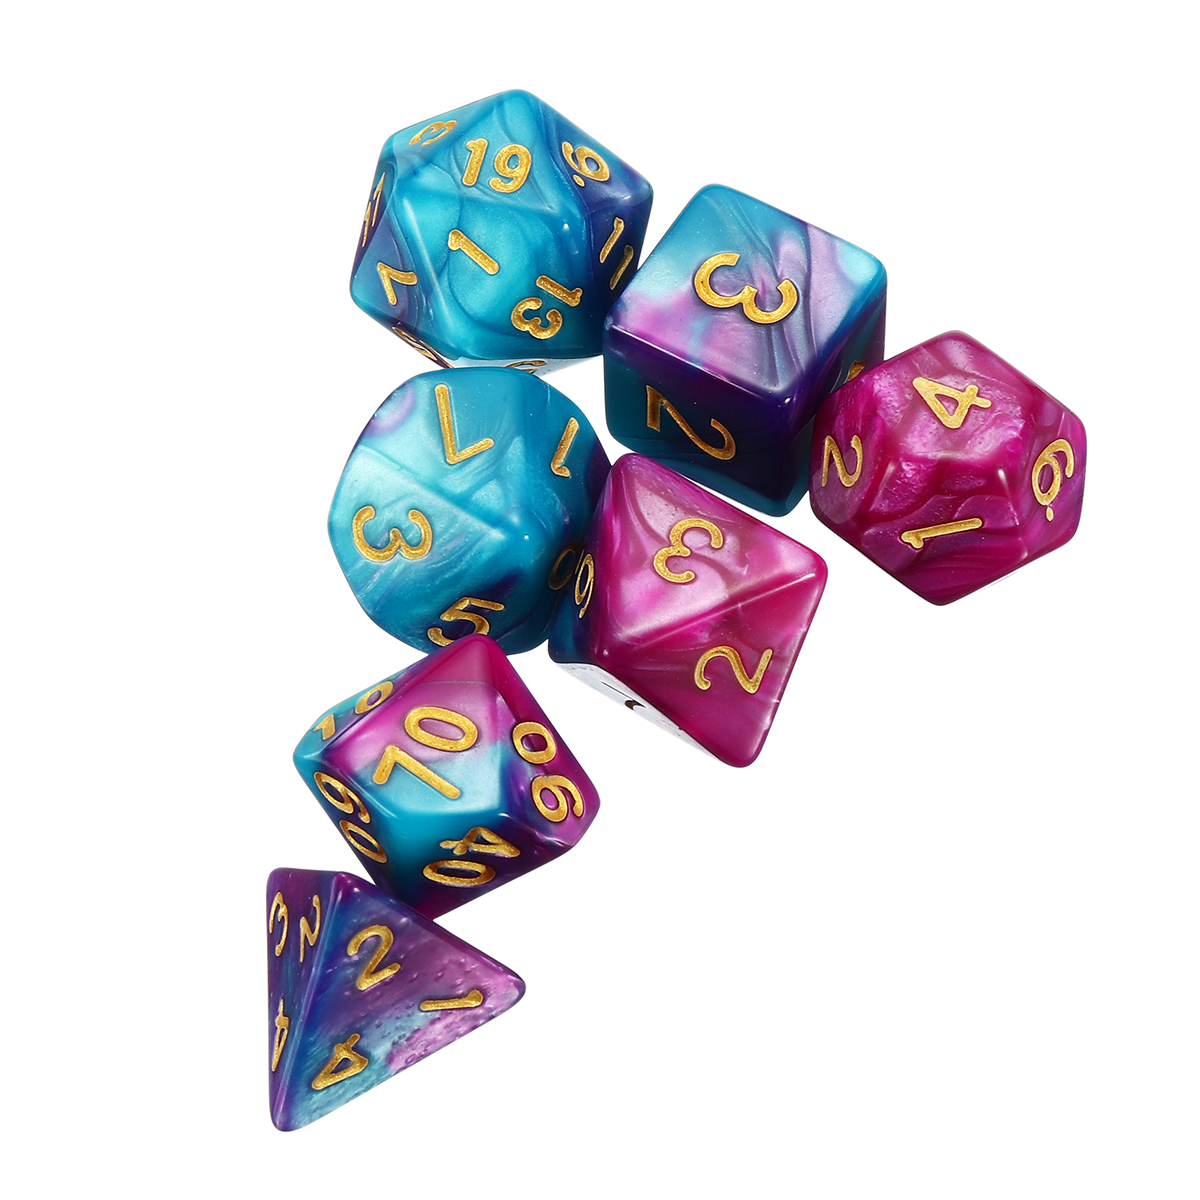 7Pcs Polyhedral Dice Set Role Playing Dice Gadgets With Bag